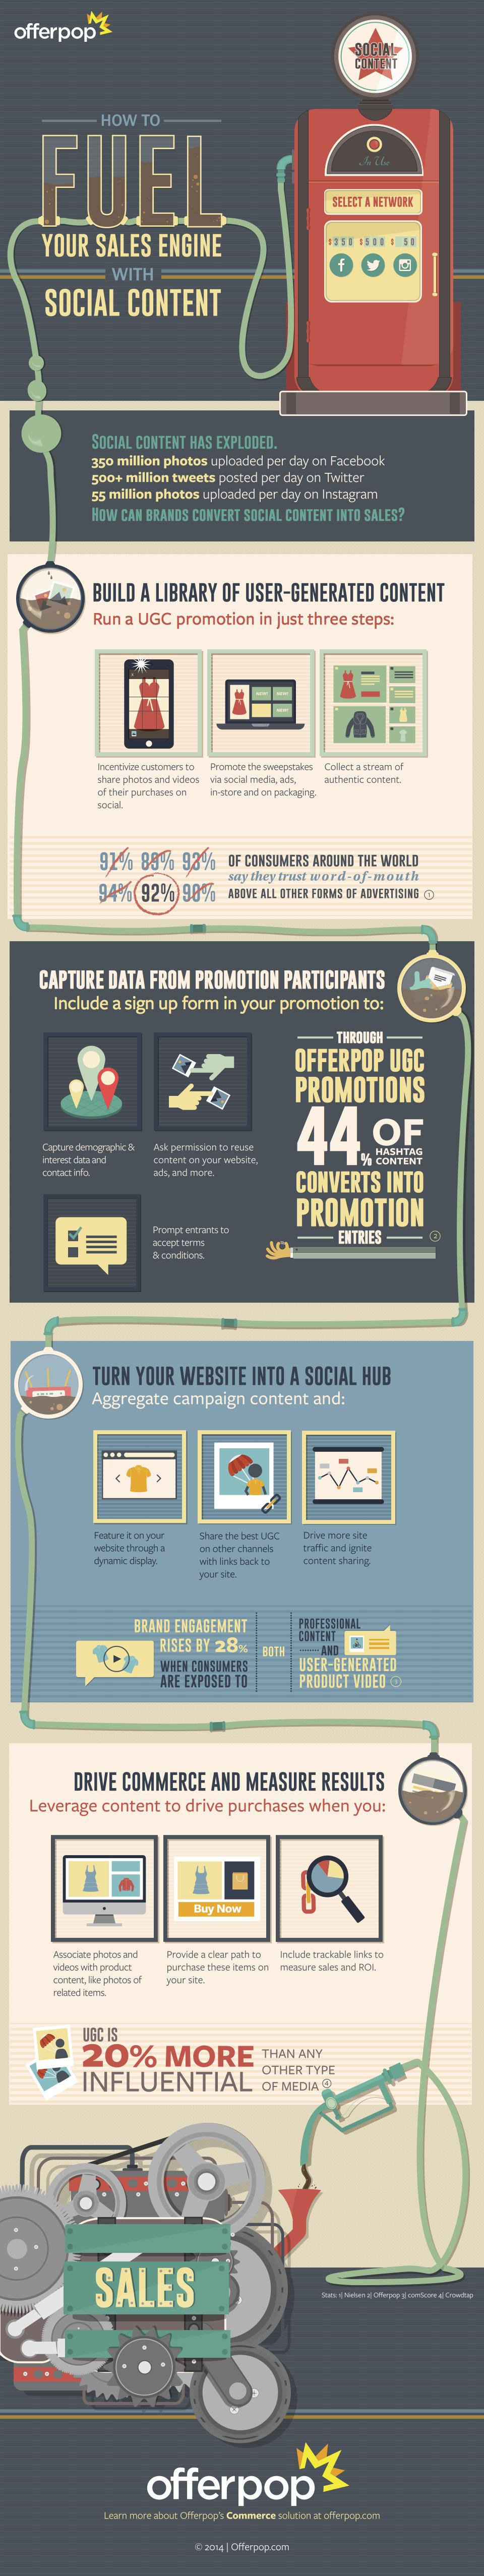 wersm-offerpop-Fueling-Your-Sales-Engine-with-Social-Content-5.141